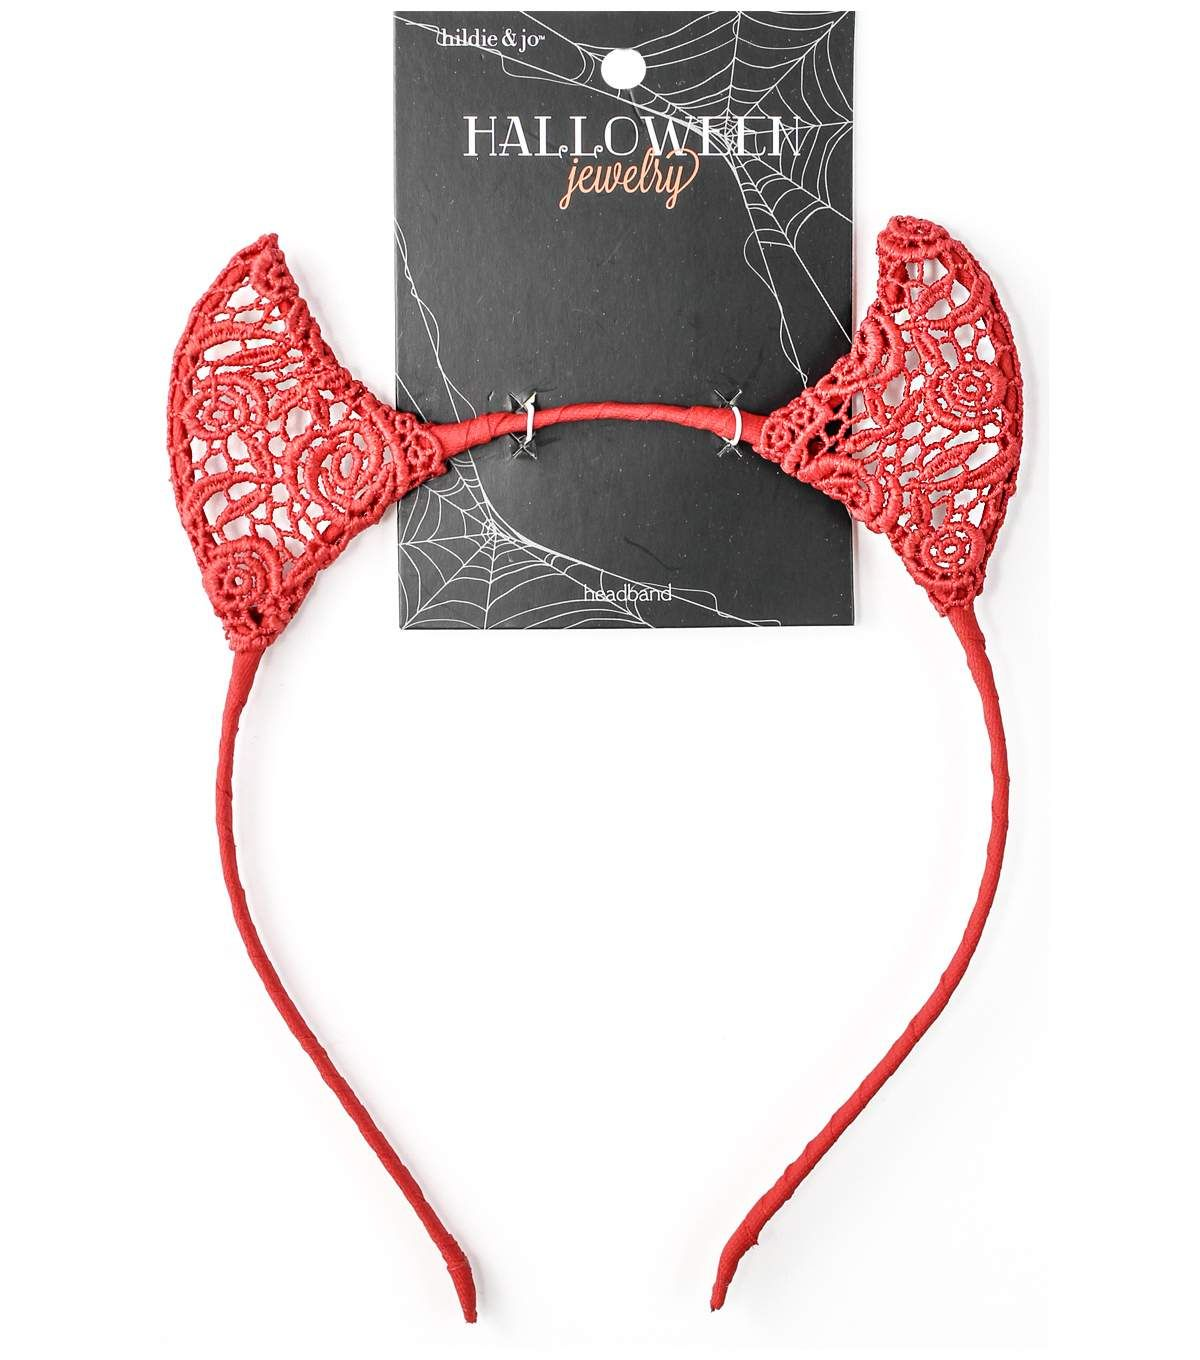 Red and Black Lace Devil Horns on Headband One Size Fits Most